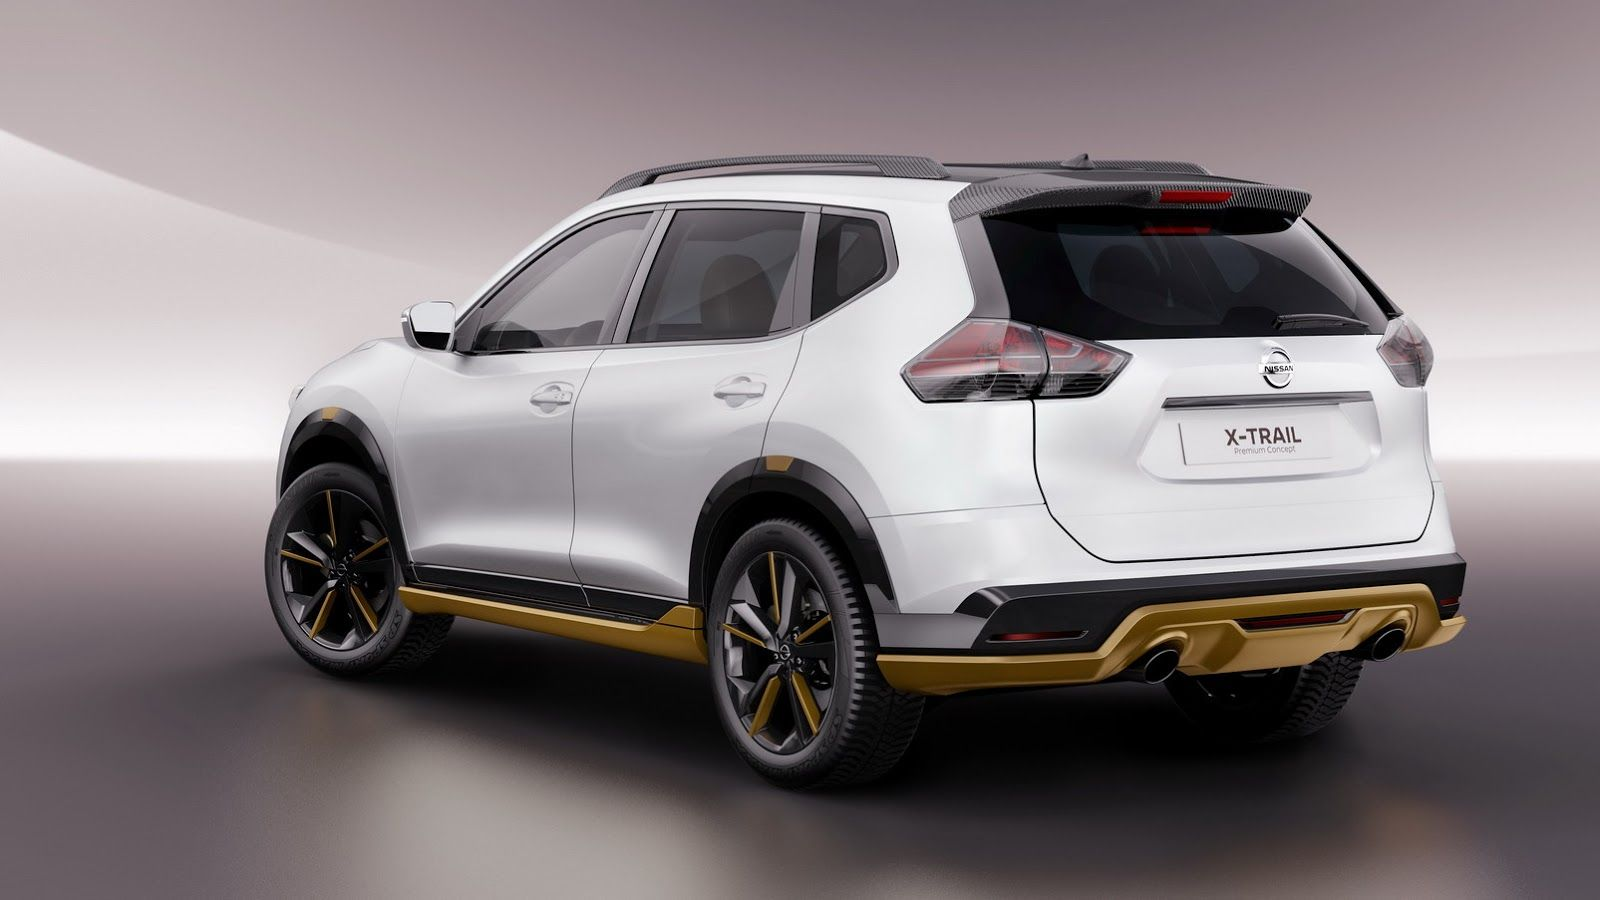 Nissan S Qashqai And X Trail Premium Concepts Hint At Vignale Style Editions Carscoops Nissan Qashqai Nissan Xtrail Nissan